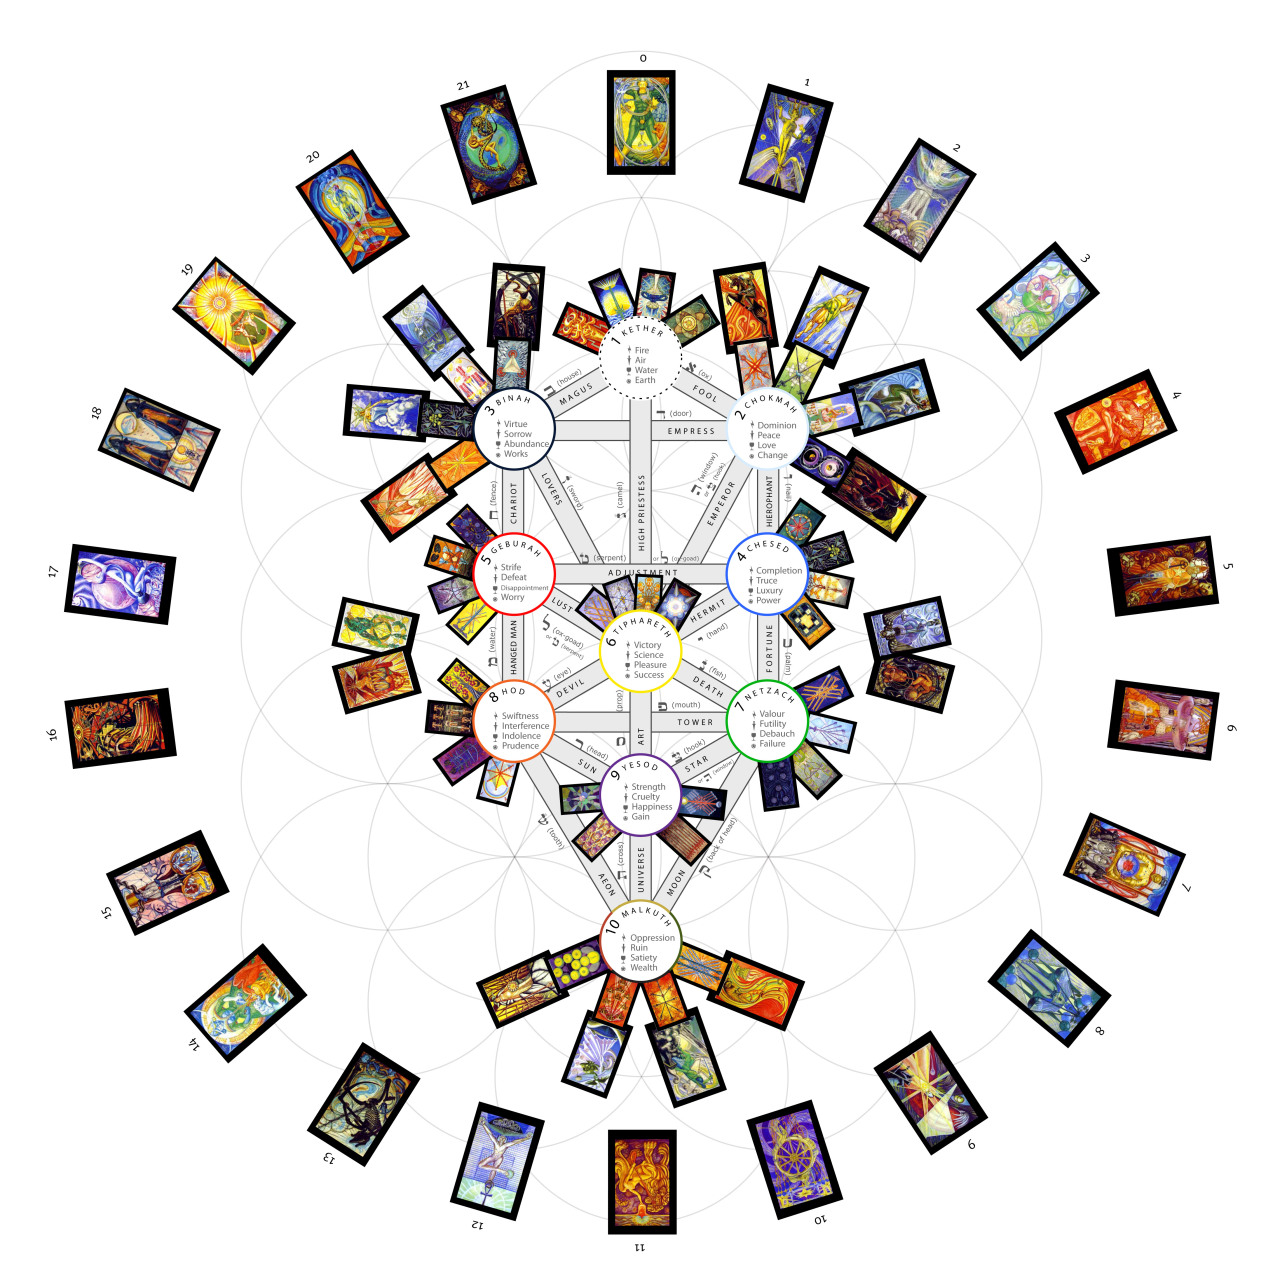 "sunstone-citrine:  illuminatizeitgeist:  Tarot card correspondences on the Tree of Life. ""With no other book than the Tarot, if he knew how to use it, could in a few years acquire universal knowledge, and would be able to speak on all subjects with unequalled learning and inexhaustible eloquence."" - Manly P. Hall, The Secret Teachings of All Ages  I own a copy of the Thoth Deck (the one in the picture). I had noticed the Hebrew writing on the cards, but didn't know where to look to start interpreting them. Then I started reading a book on the Kabbalah. The next day, this shows up on my dashboard. Interesting. Saving the picture for future reference.  Raven's Tarot Site is my favourite reference for fighting reading with the Thoth. Super Tarot is another great site, where you can compare card meanings across the systems. It is also an invaluable resource if you want to get into working with dignities."